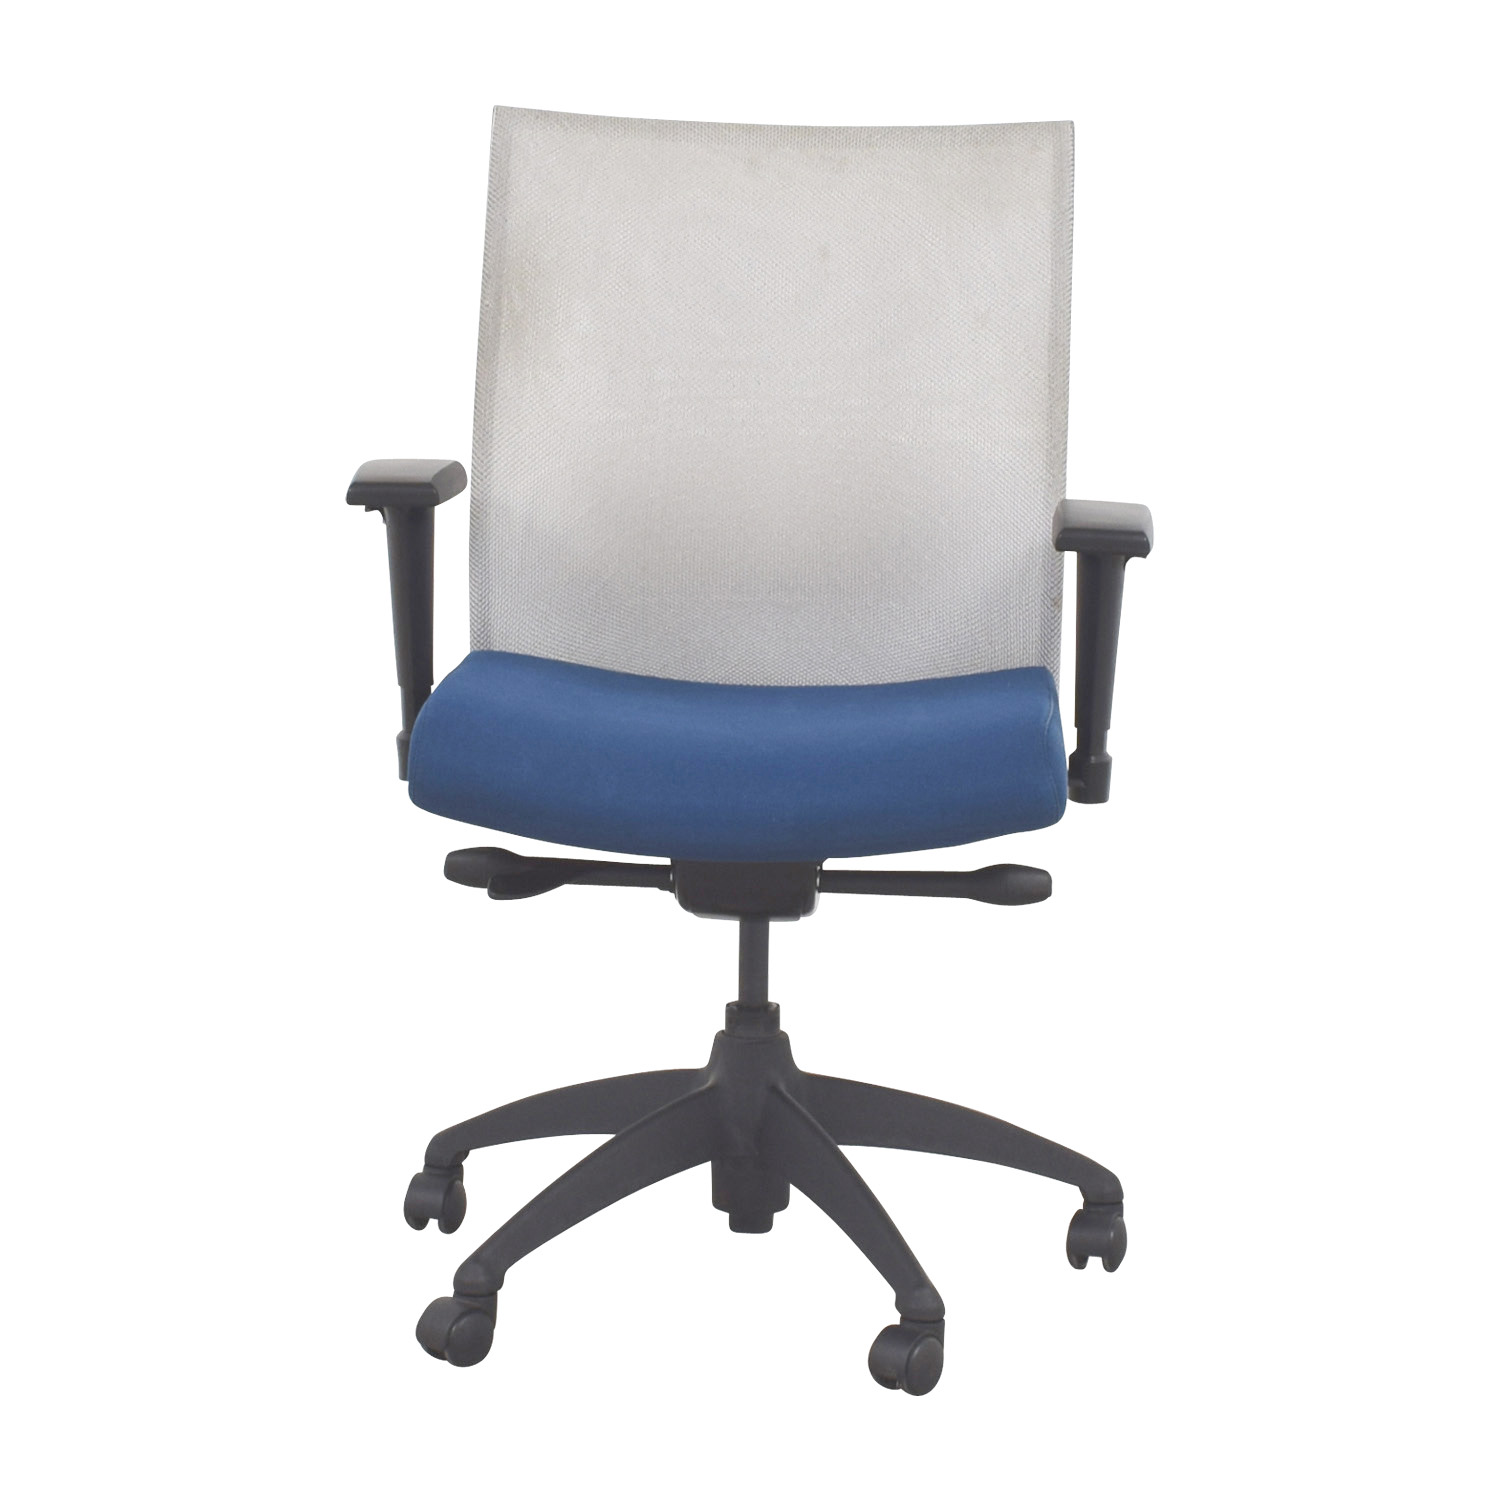 Stylex Stylex Blue Adjustable Arms Task Chair discount